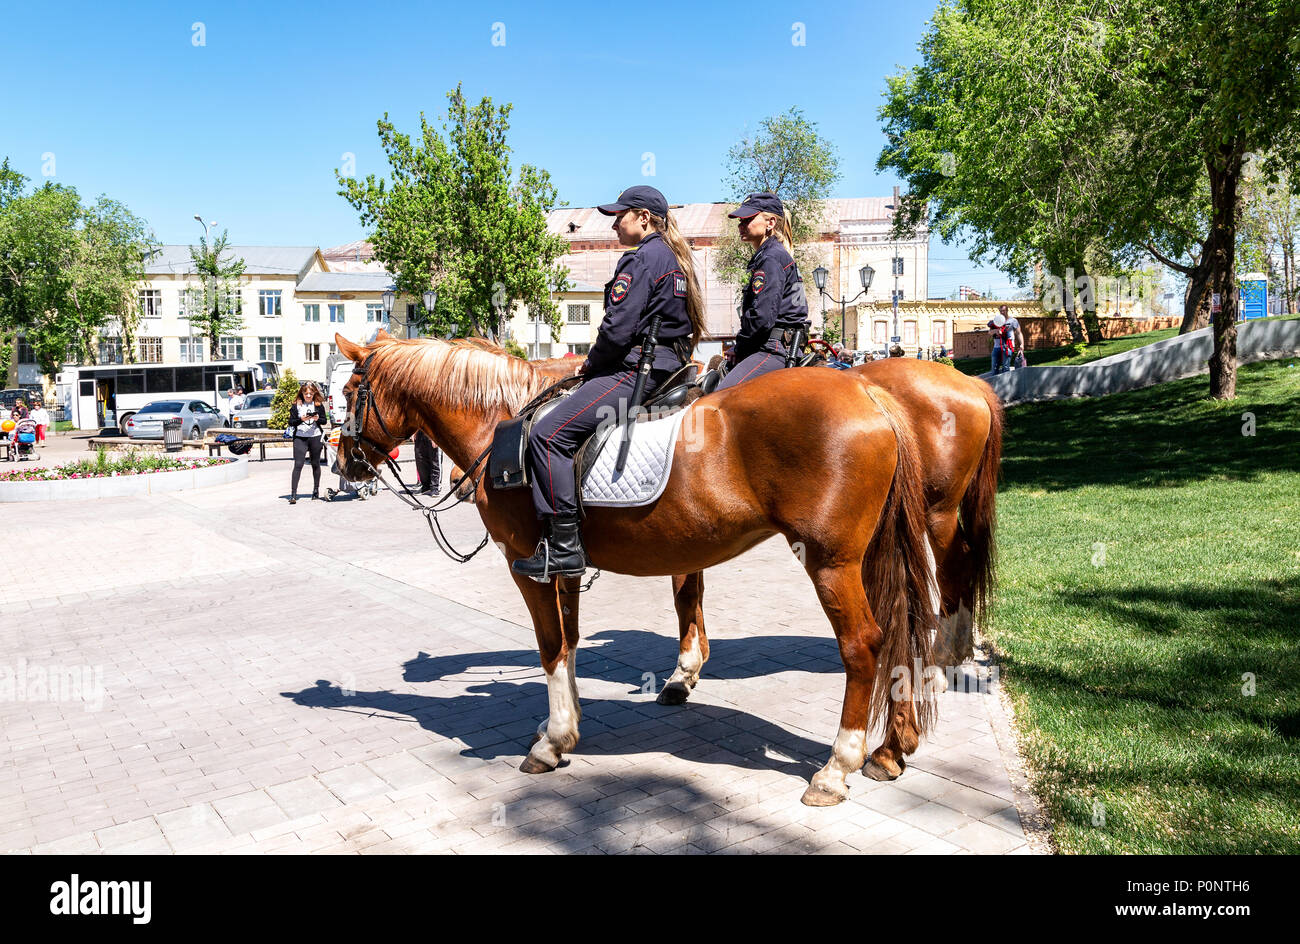 Samara, Russia - May 27, 2018: Female mounted police on horse back at the city street - Stock Image